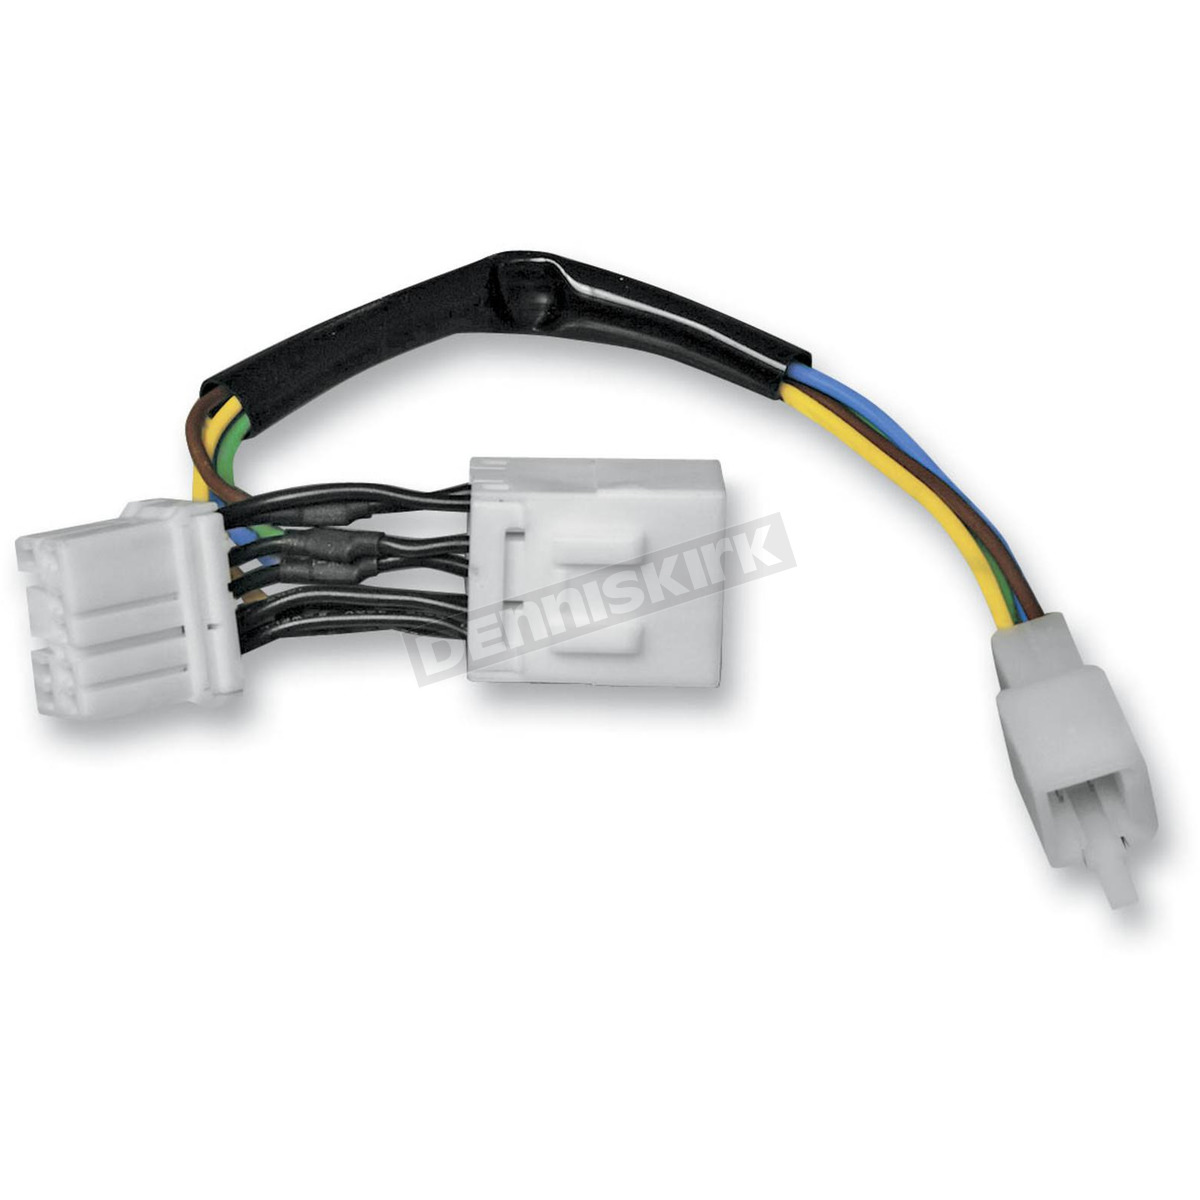 trailer plug wiring diagram 6 pin images trailer sub wiring harness for harley touring models 6 pin wiring